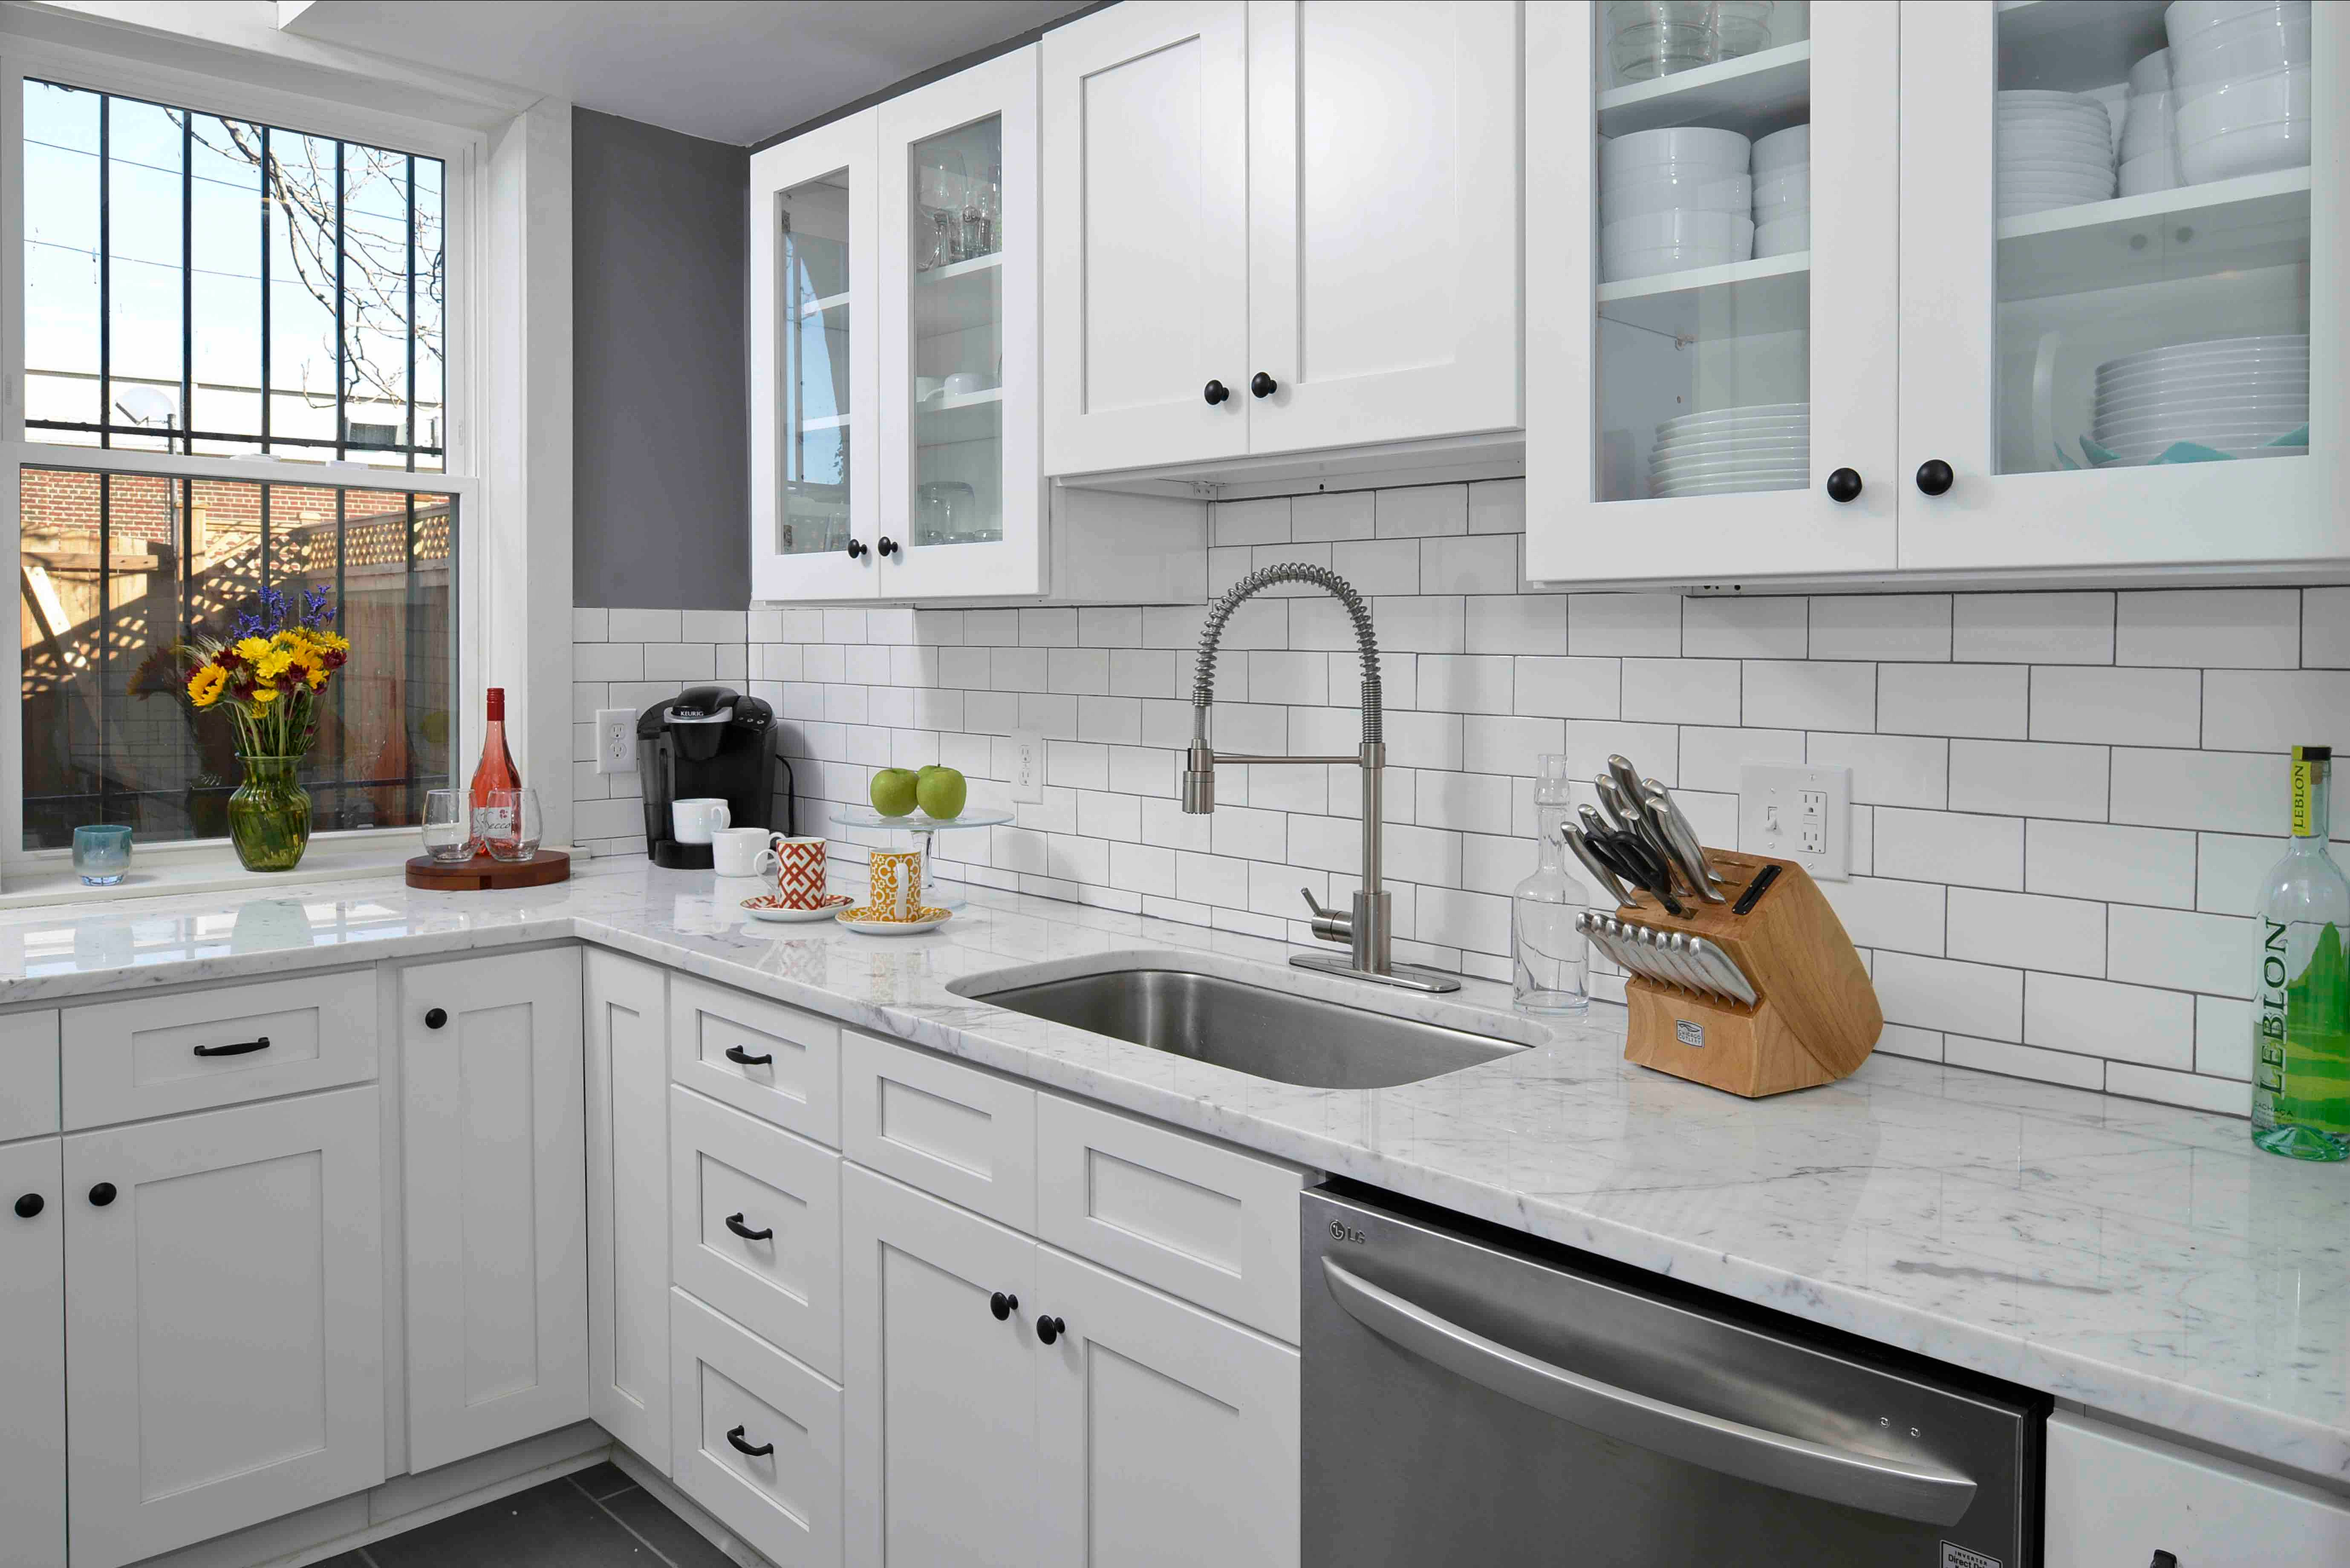 Karma Home Designs DC VA and MD Remodeling Projects | Kitchen ...